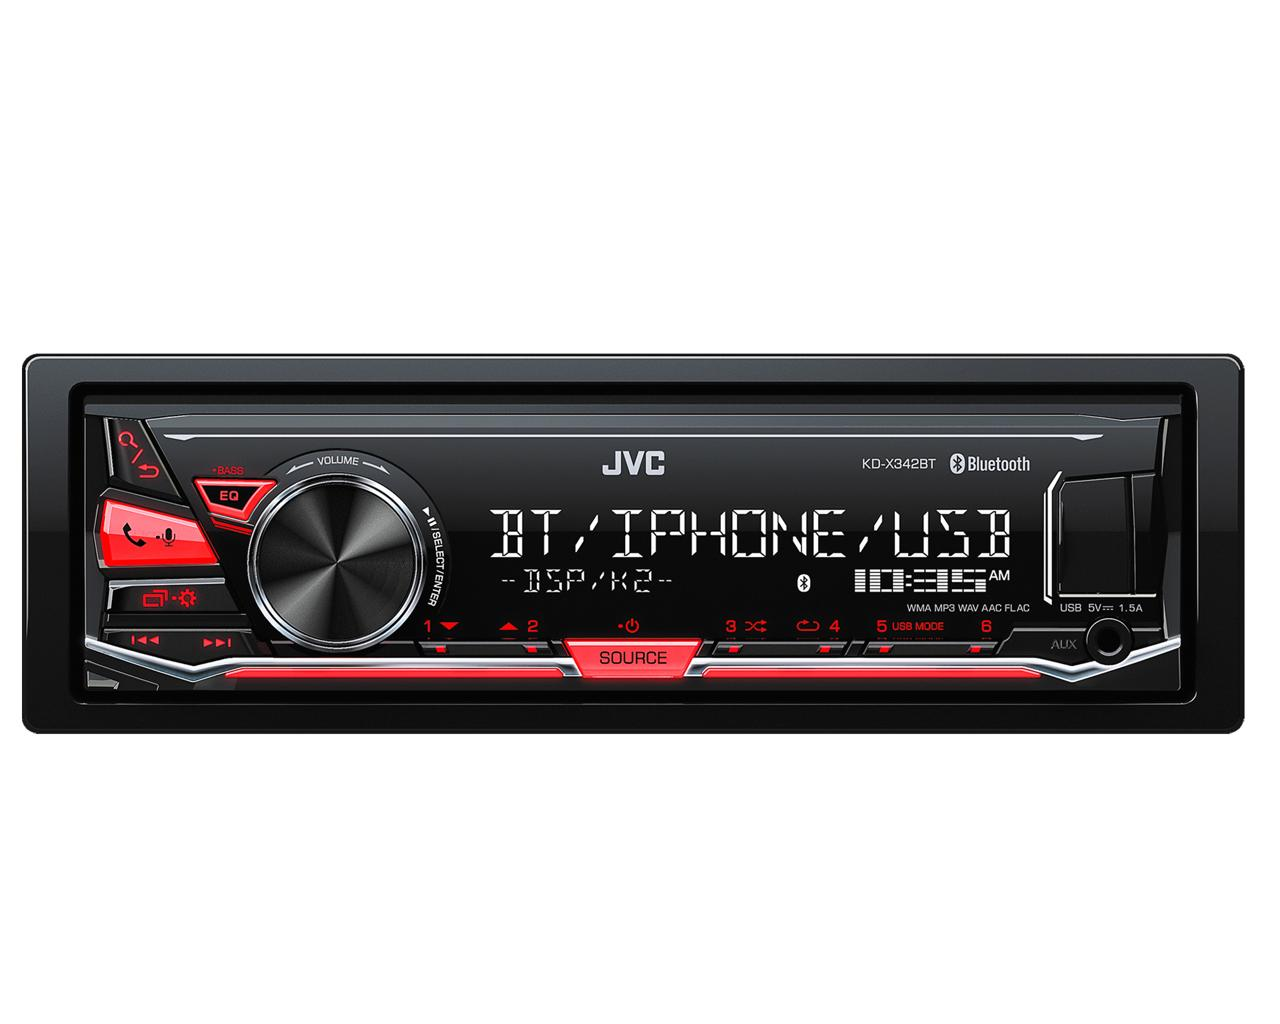 Receptor digital JVC con bluetooth